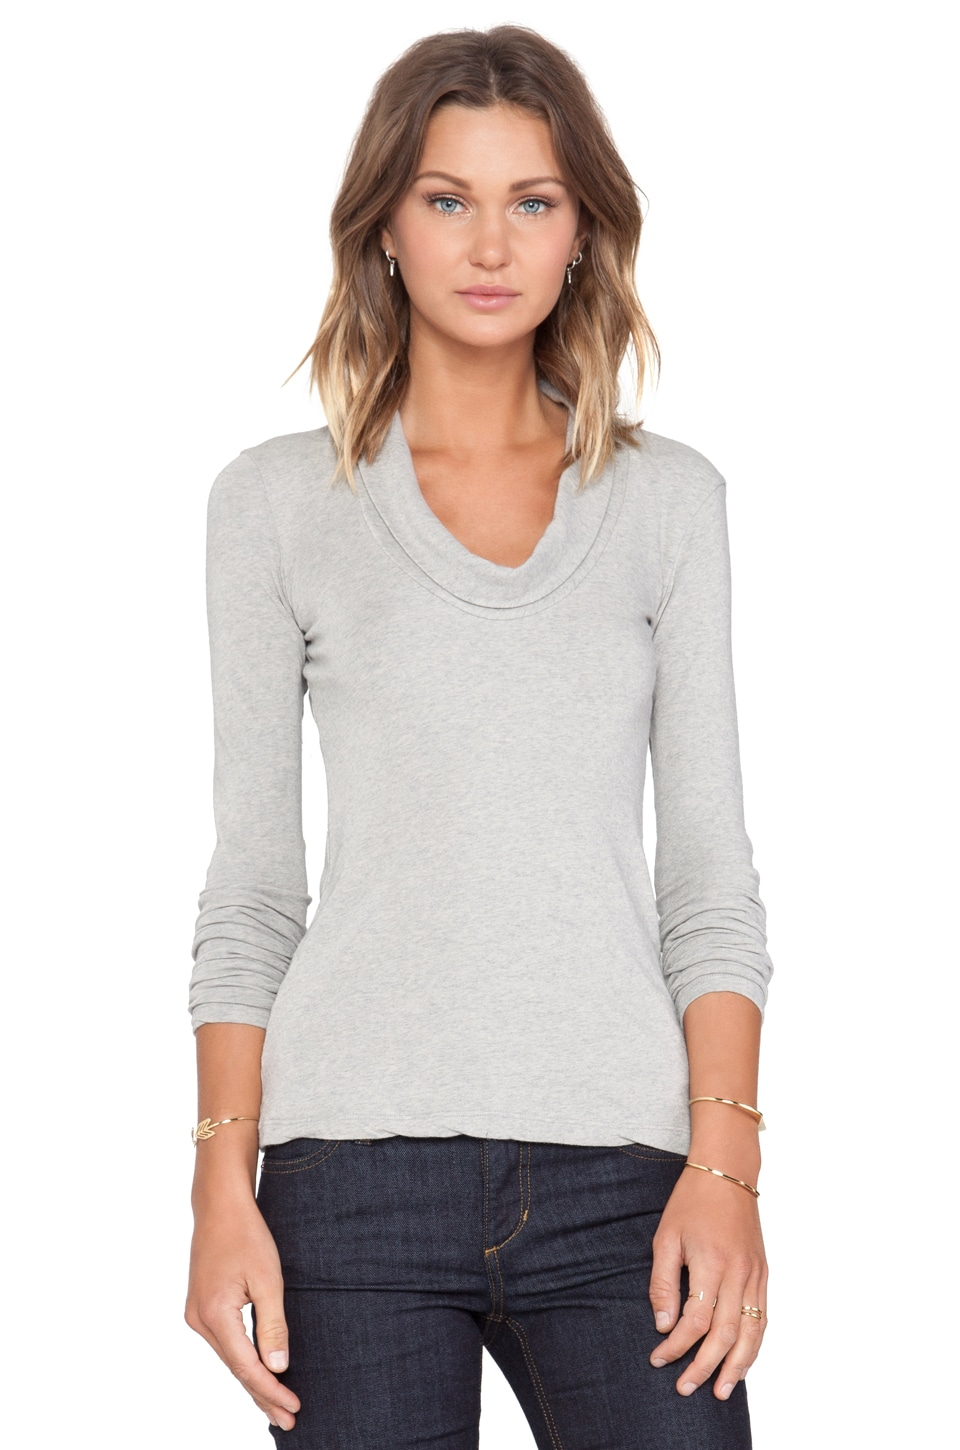 James Perse Skinny Cowl Cashmere Top in Heather Grey